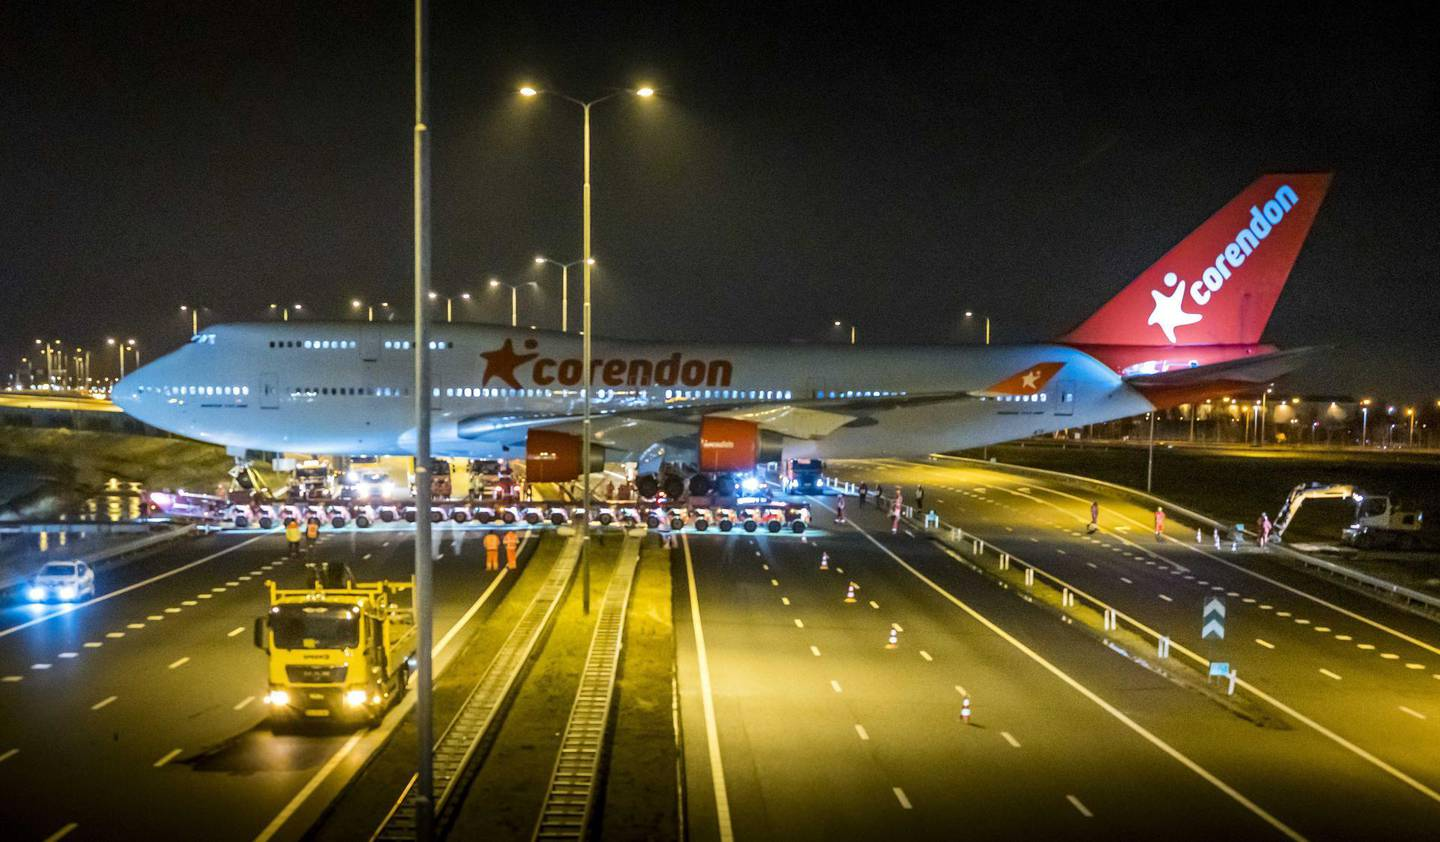 epa07355824 A fully stripped Boeing 747 of the airline Corendon is transported over the A9 highway, Badhoevedorp. the Netherlands, 09 February 2019. The jumbo jet is transported on a trailer from the airport to a hotel where it will become a hotel attraction.  EPA/LEX VAN LIESHOUT